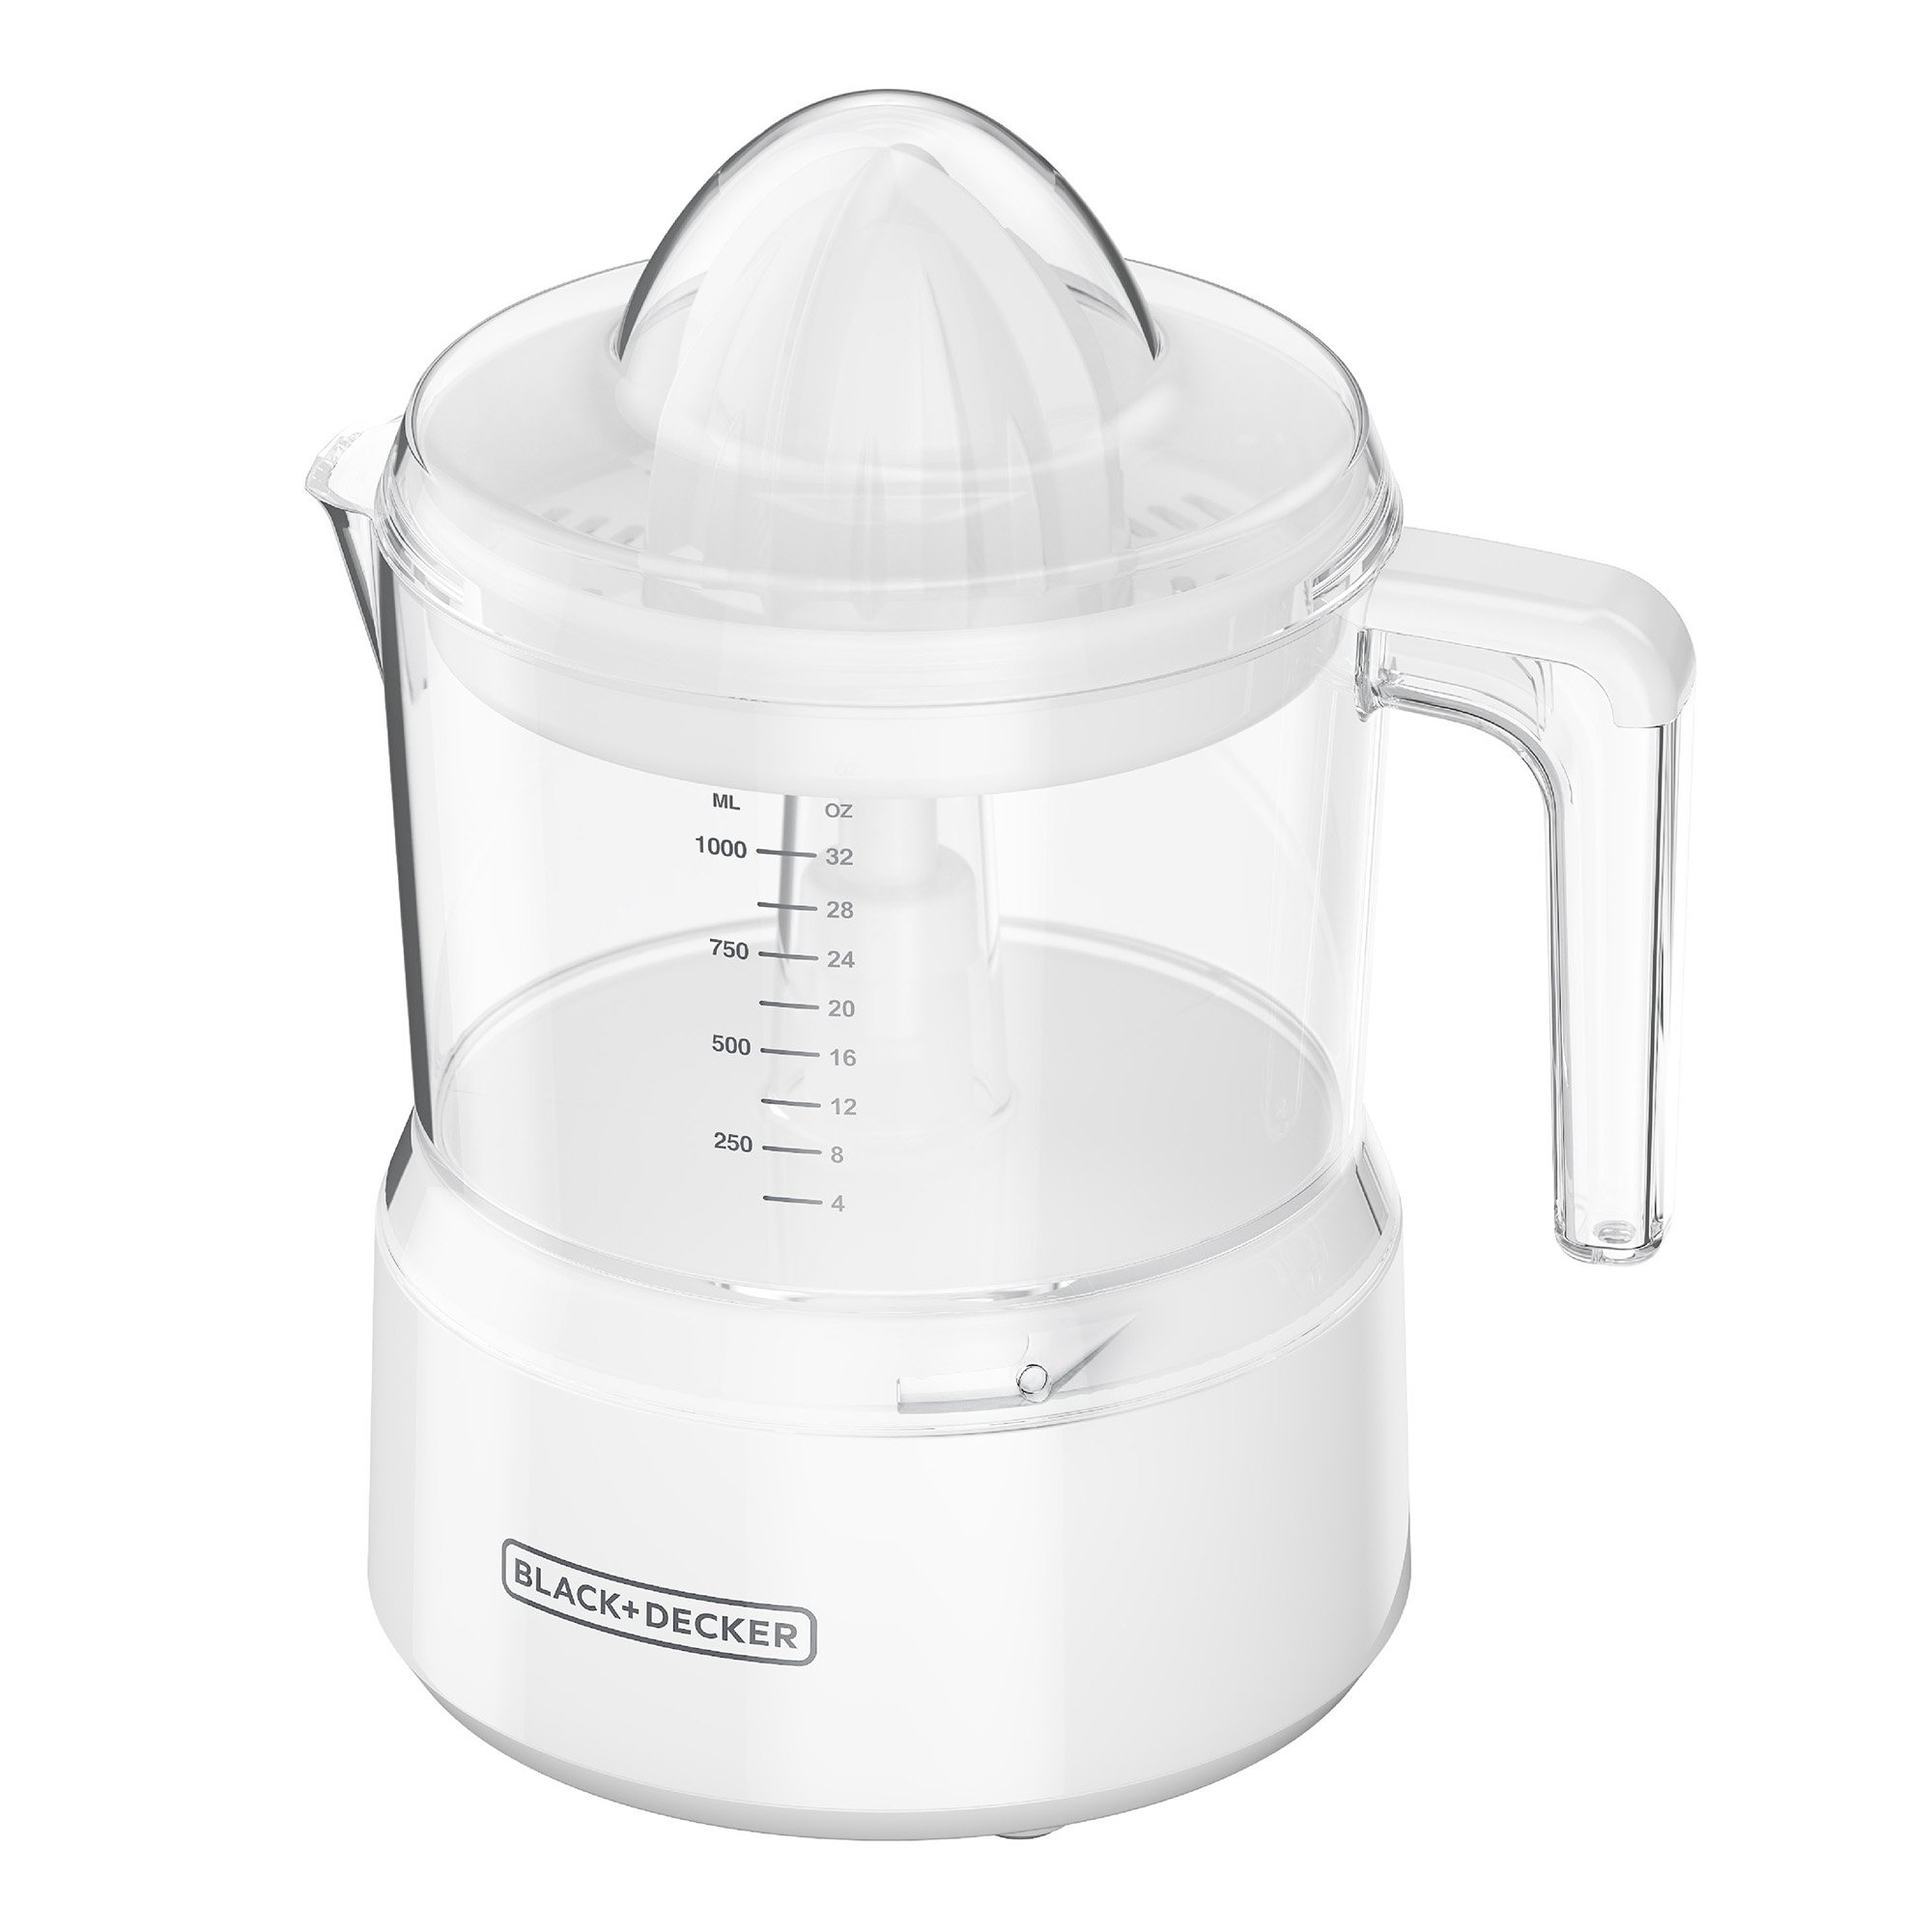 BLACK+DECKER 32oz Citrus Juicer, White, CJ650W by BLACK+DECKER (Image #1)